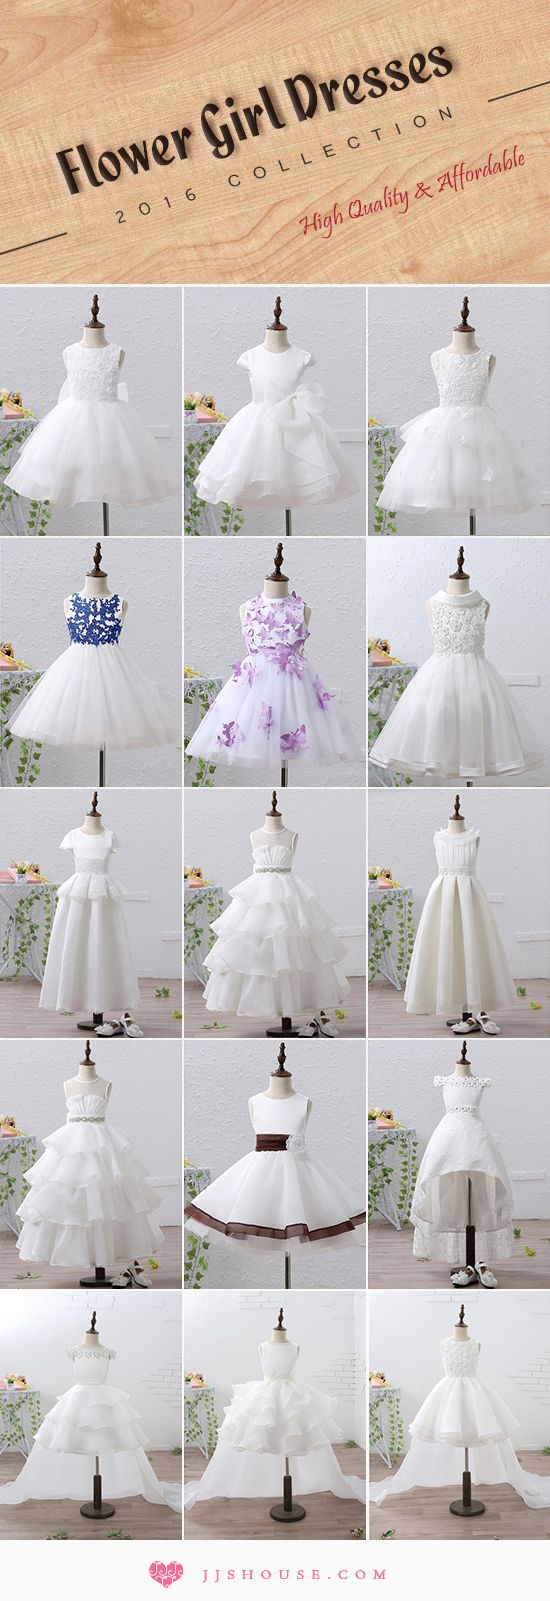 Flower Girl Dresses 2016 Collection High Quality & Affordable #Flowergirldress